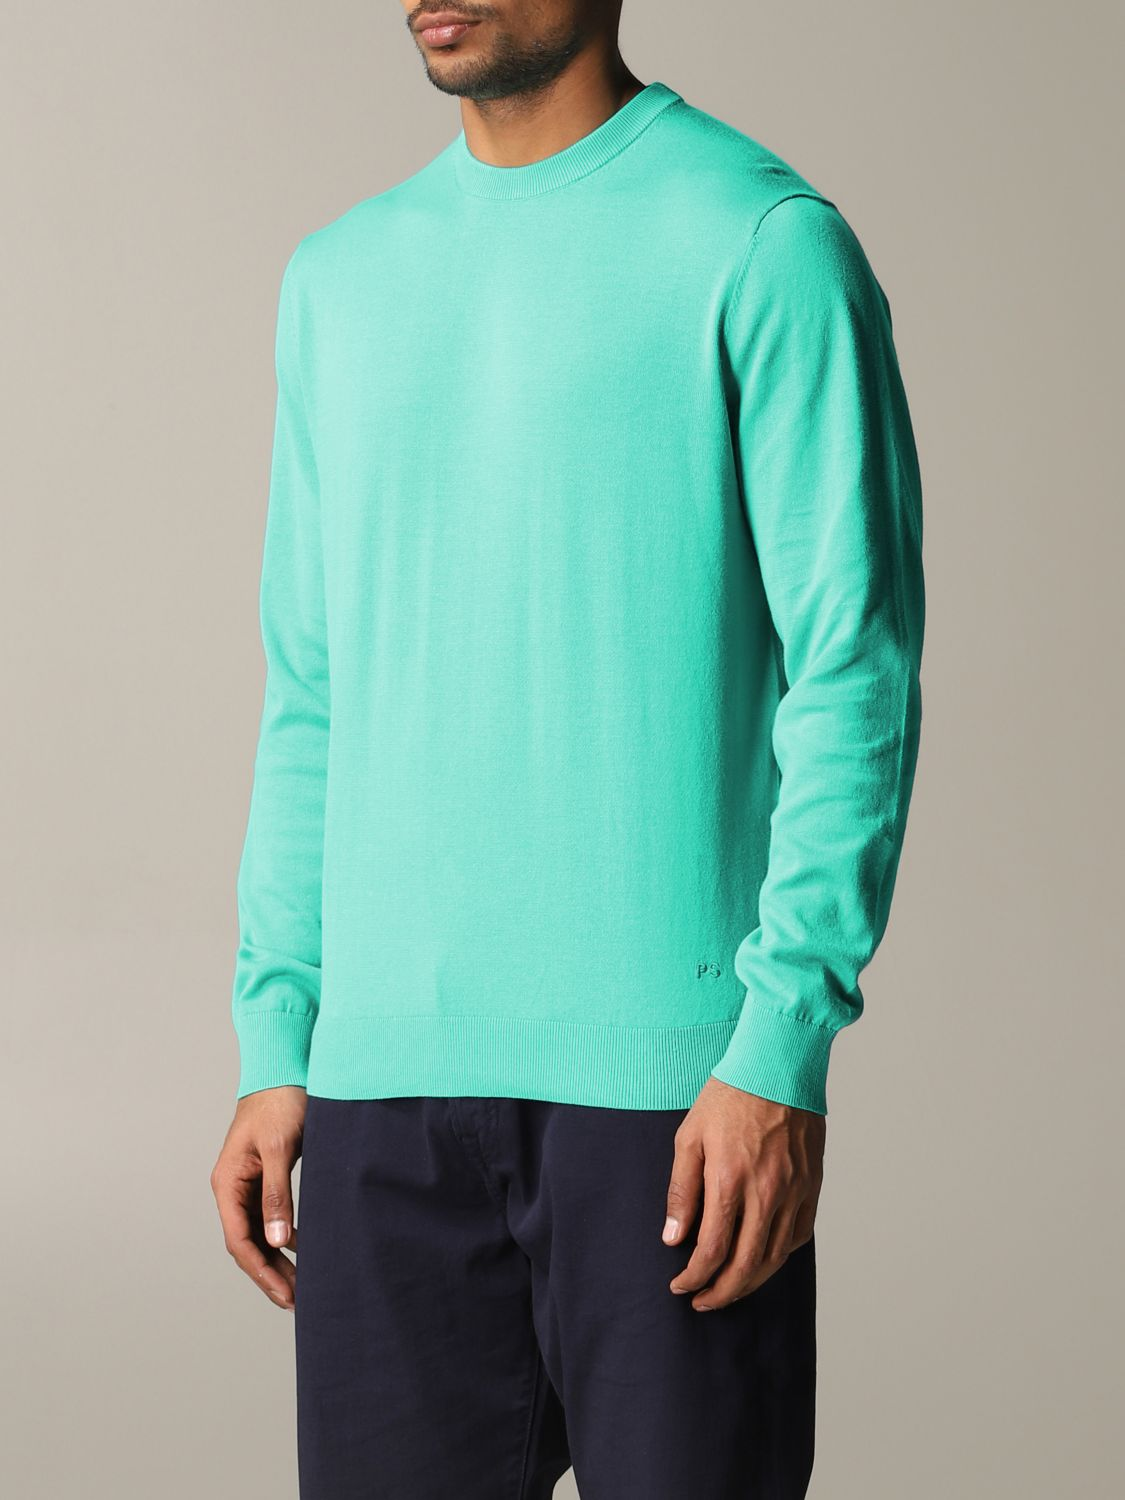 Jumper men Paul Smith London sea 4